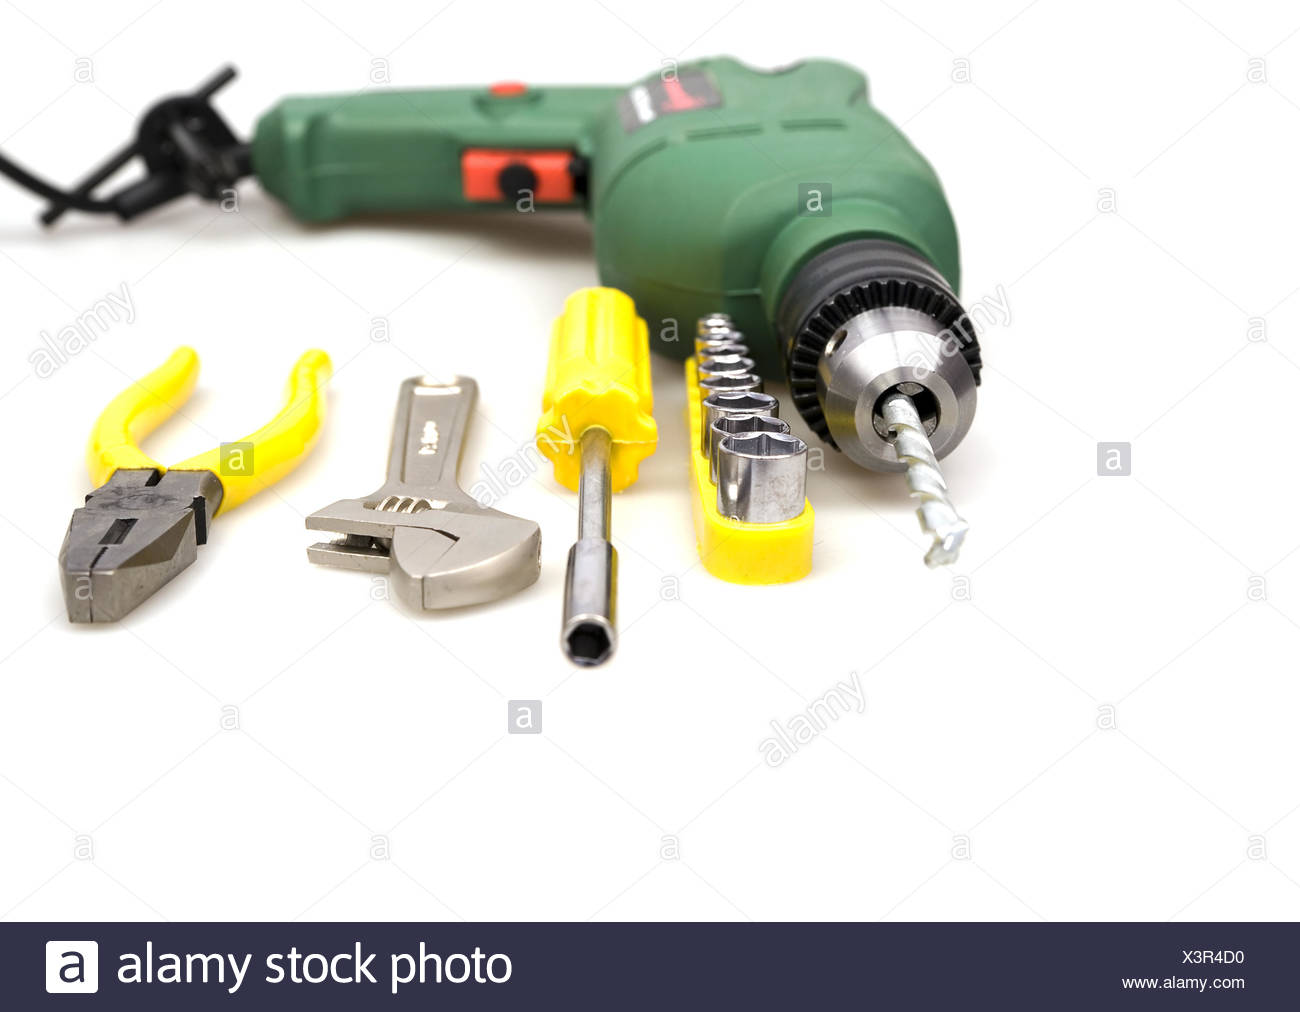 drill and other tools Stock Photo